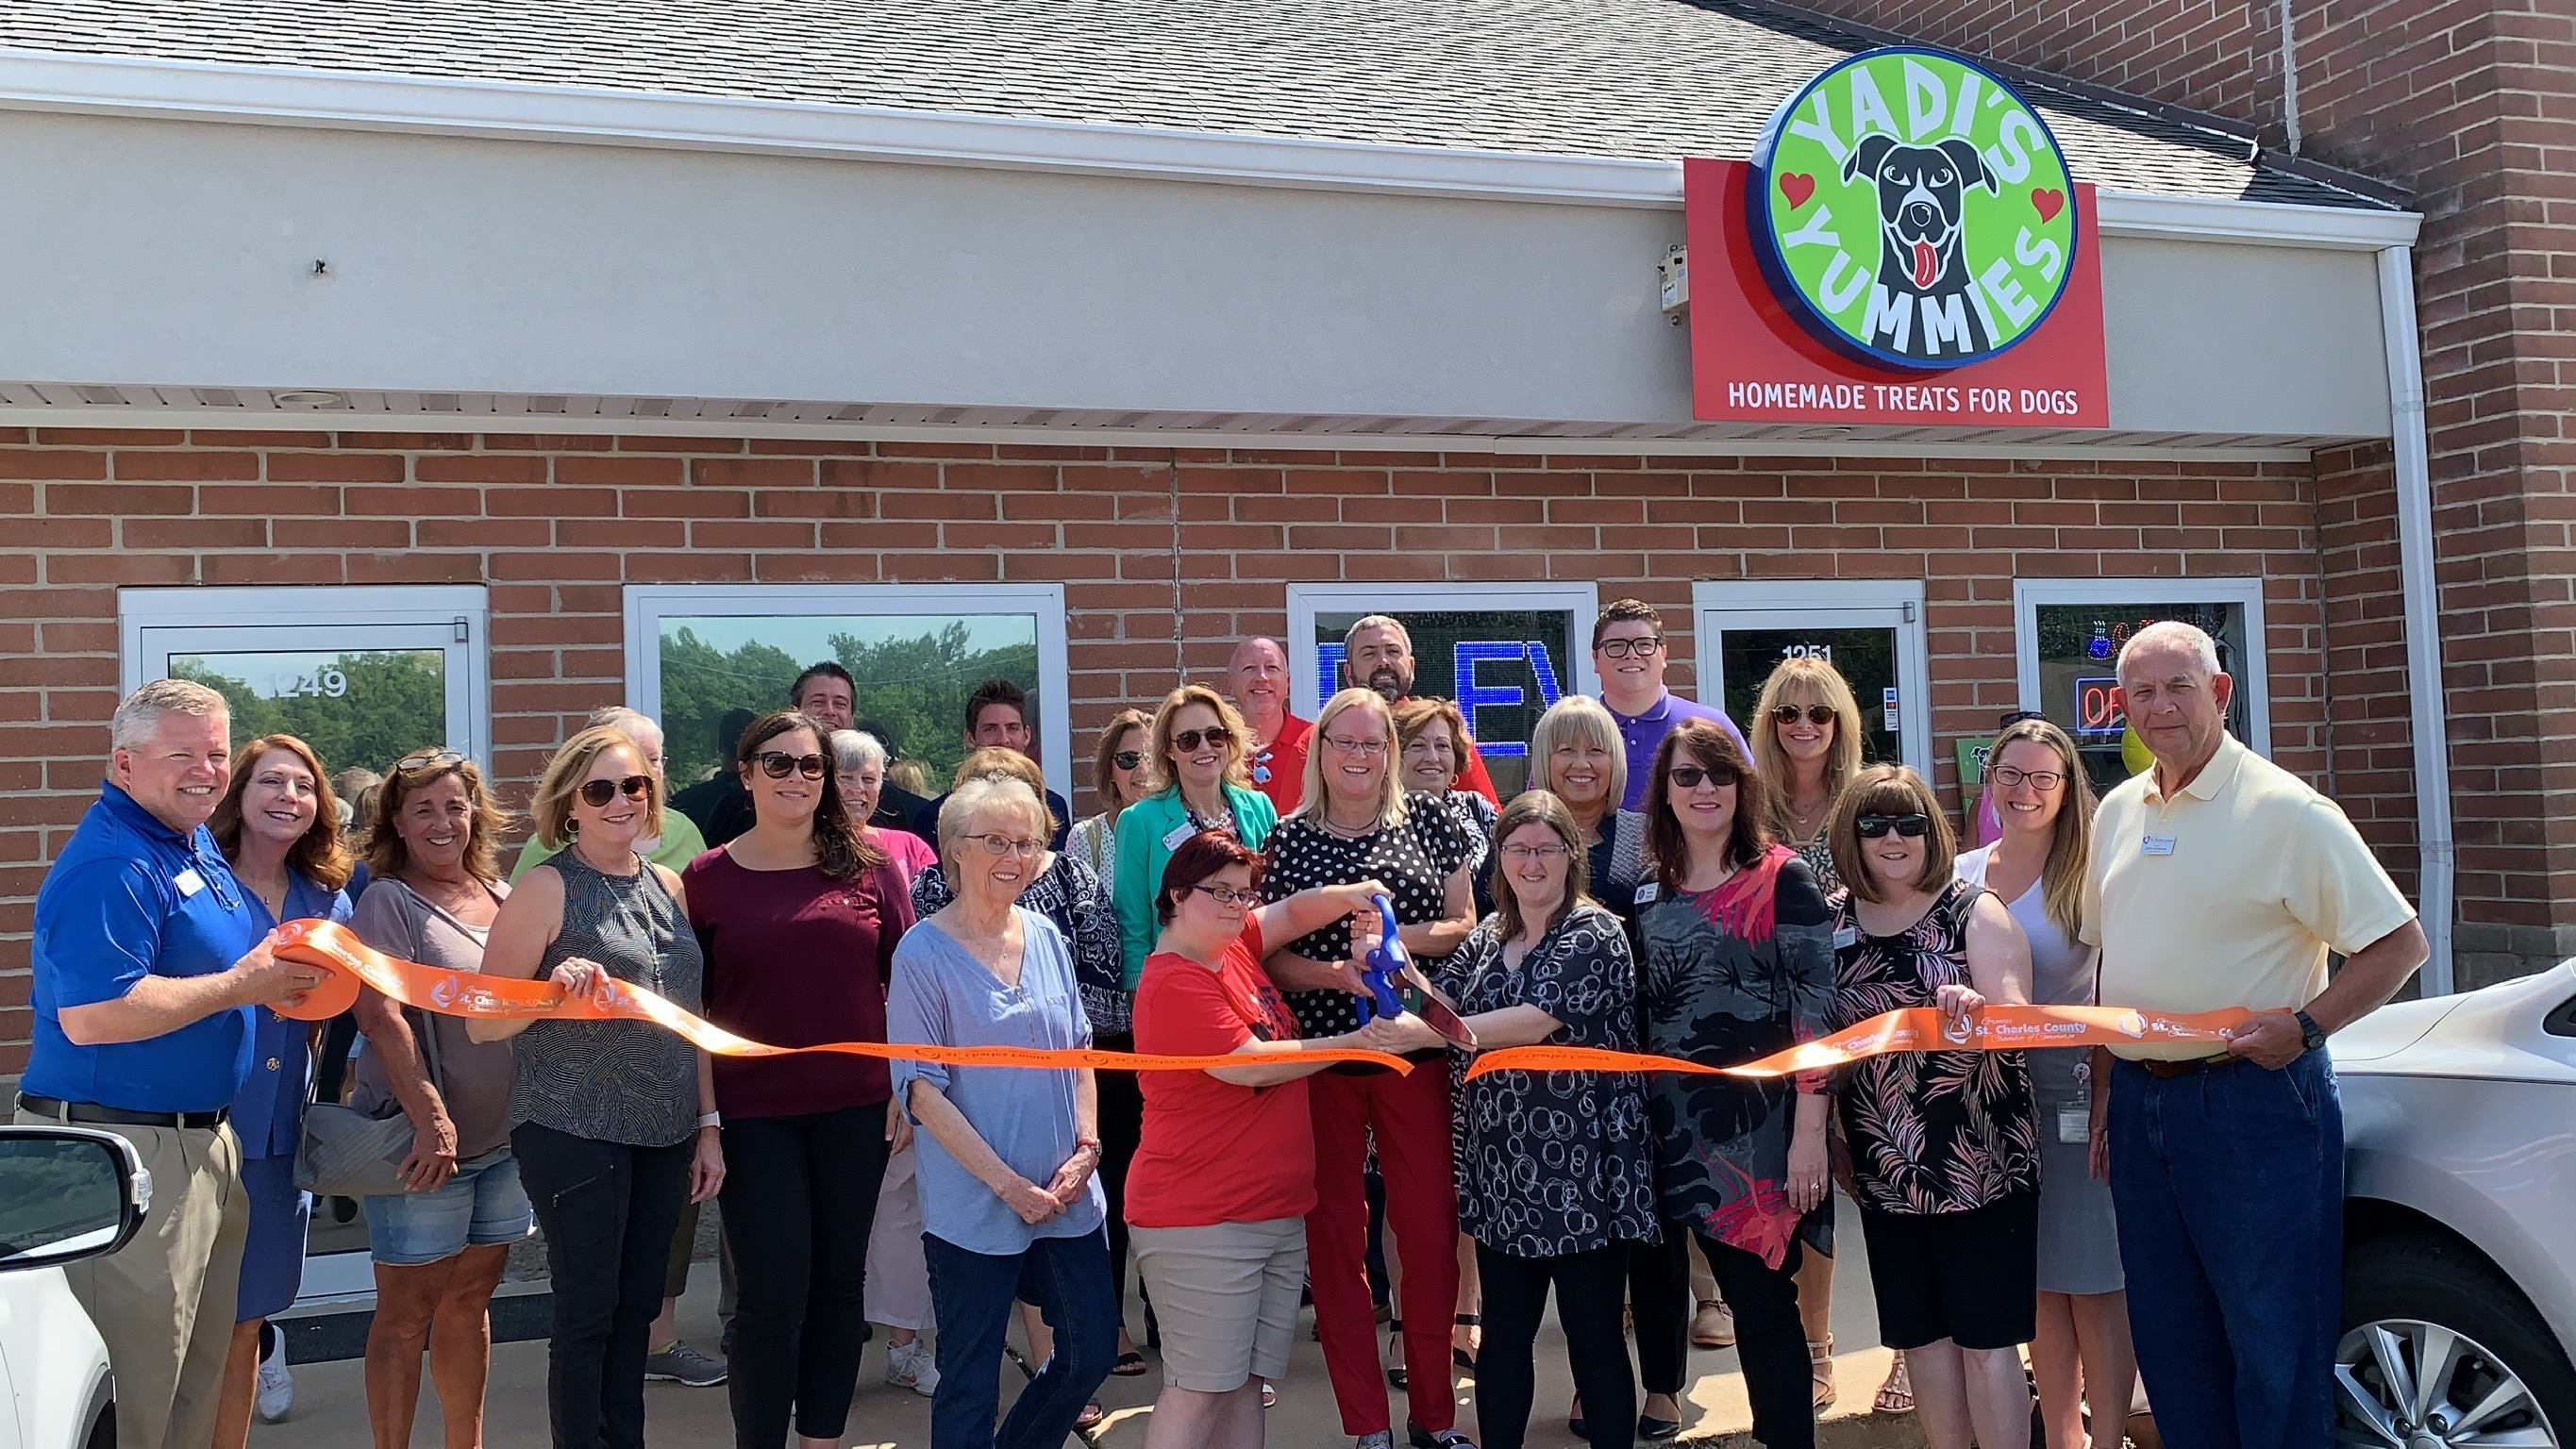 Yadi's Yummies Celebrates Grand Opening with Ribbon Cutting Celebration